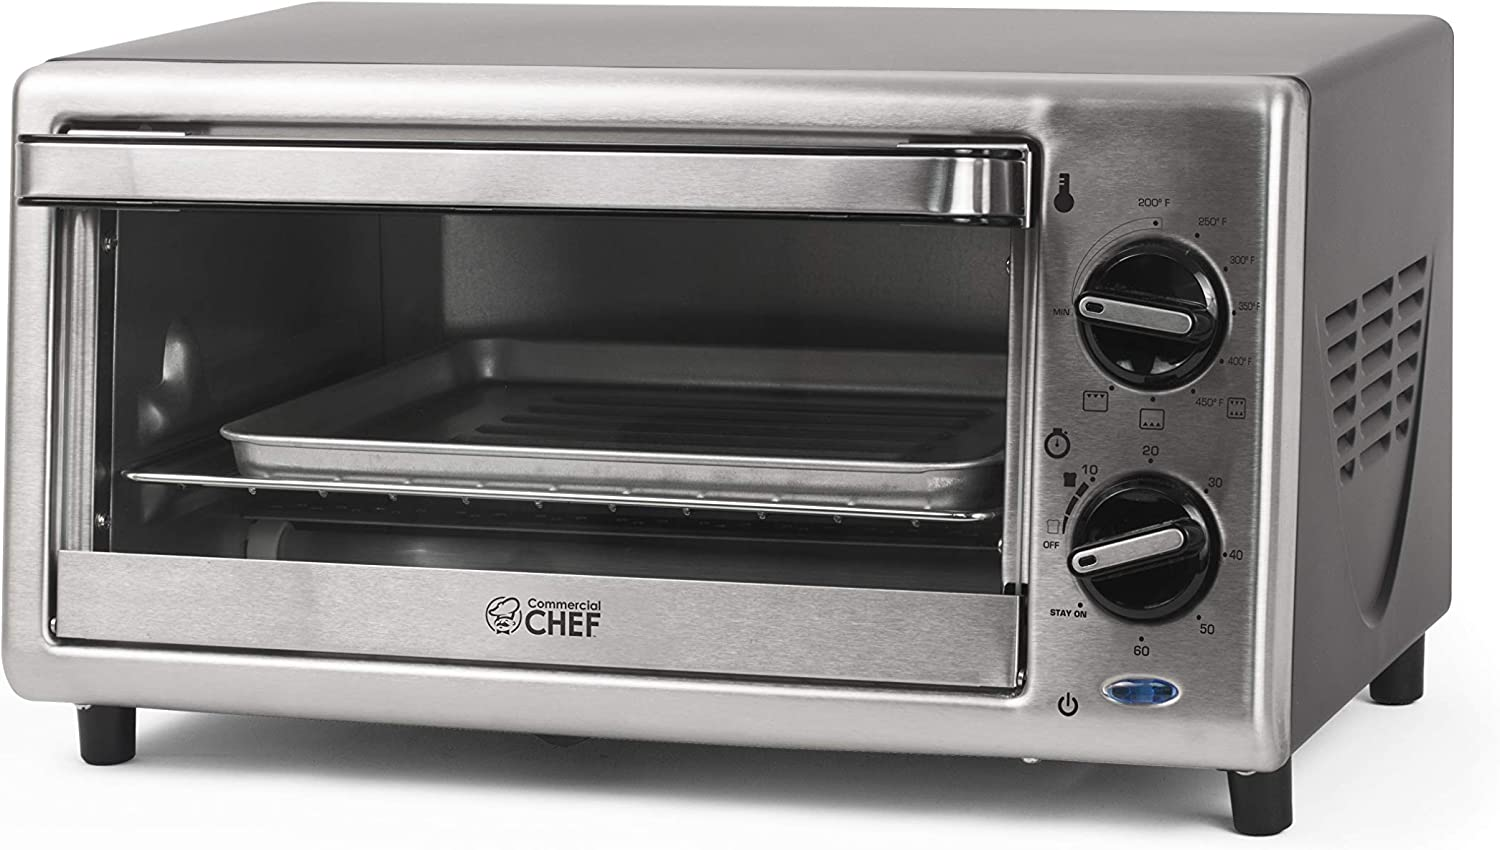 Commercial Chef CHTO2010S Toaster Oven, 0.4 Cubic Feet, Stainless Steel